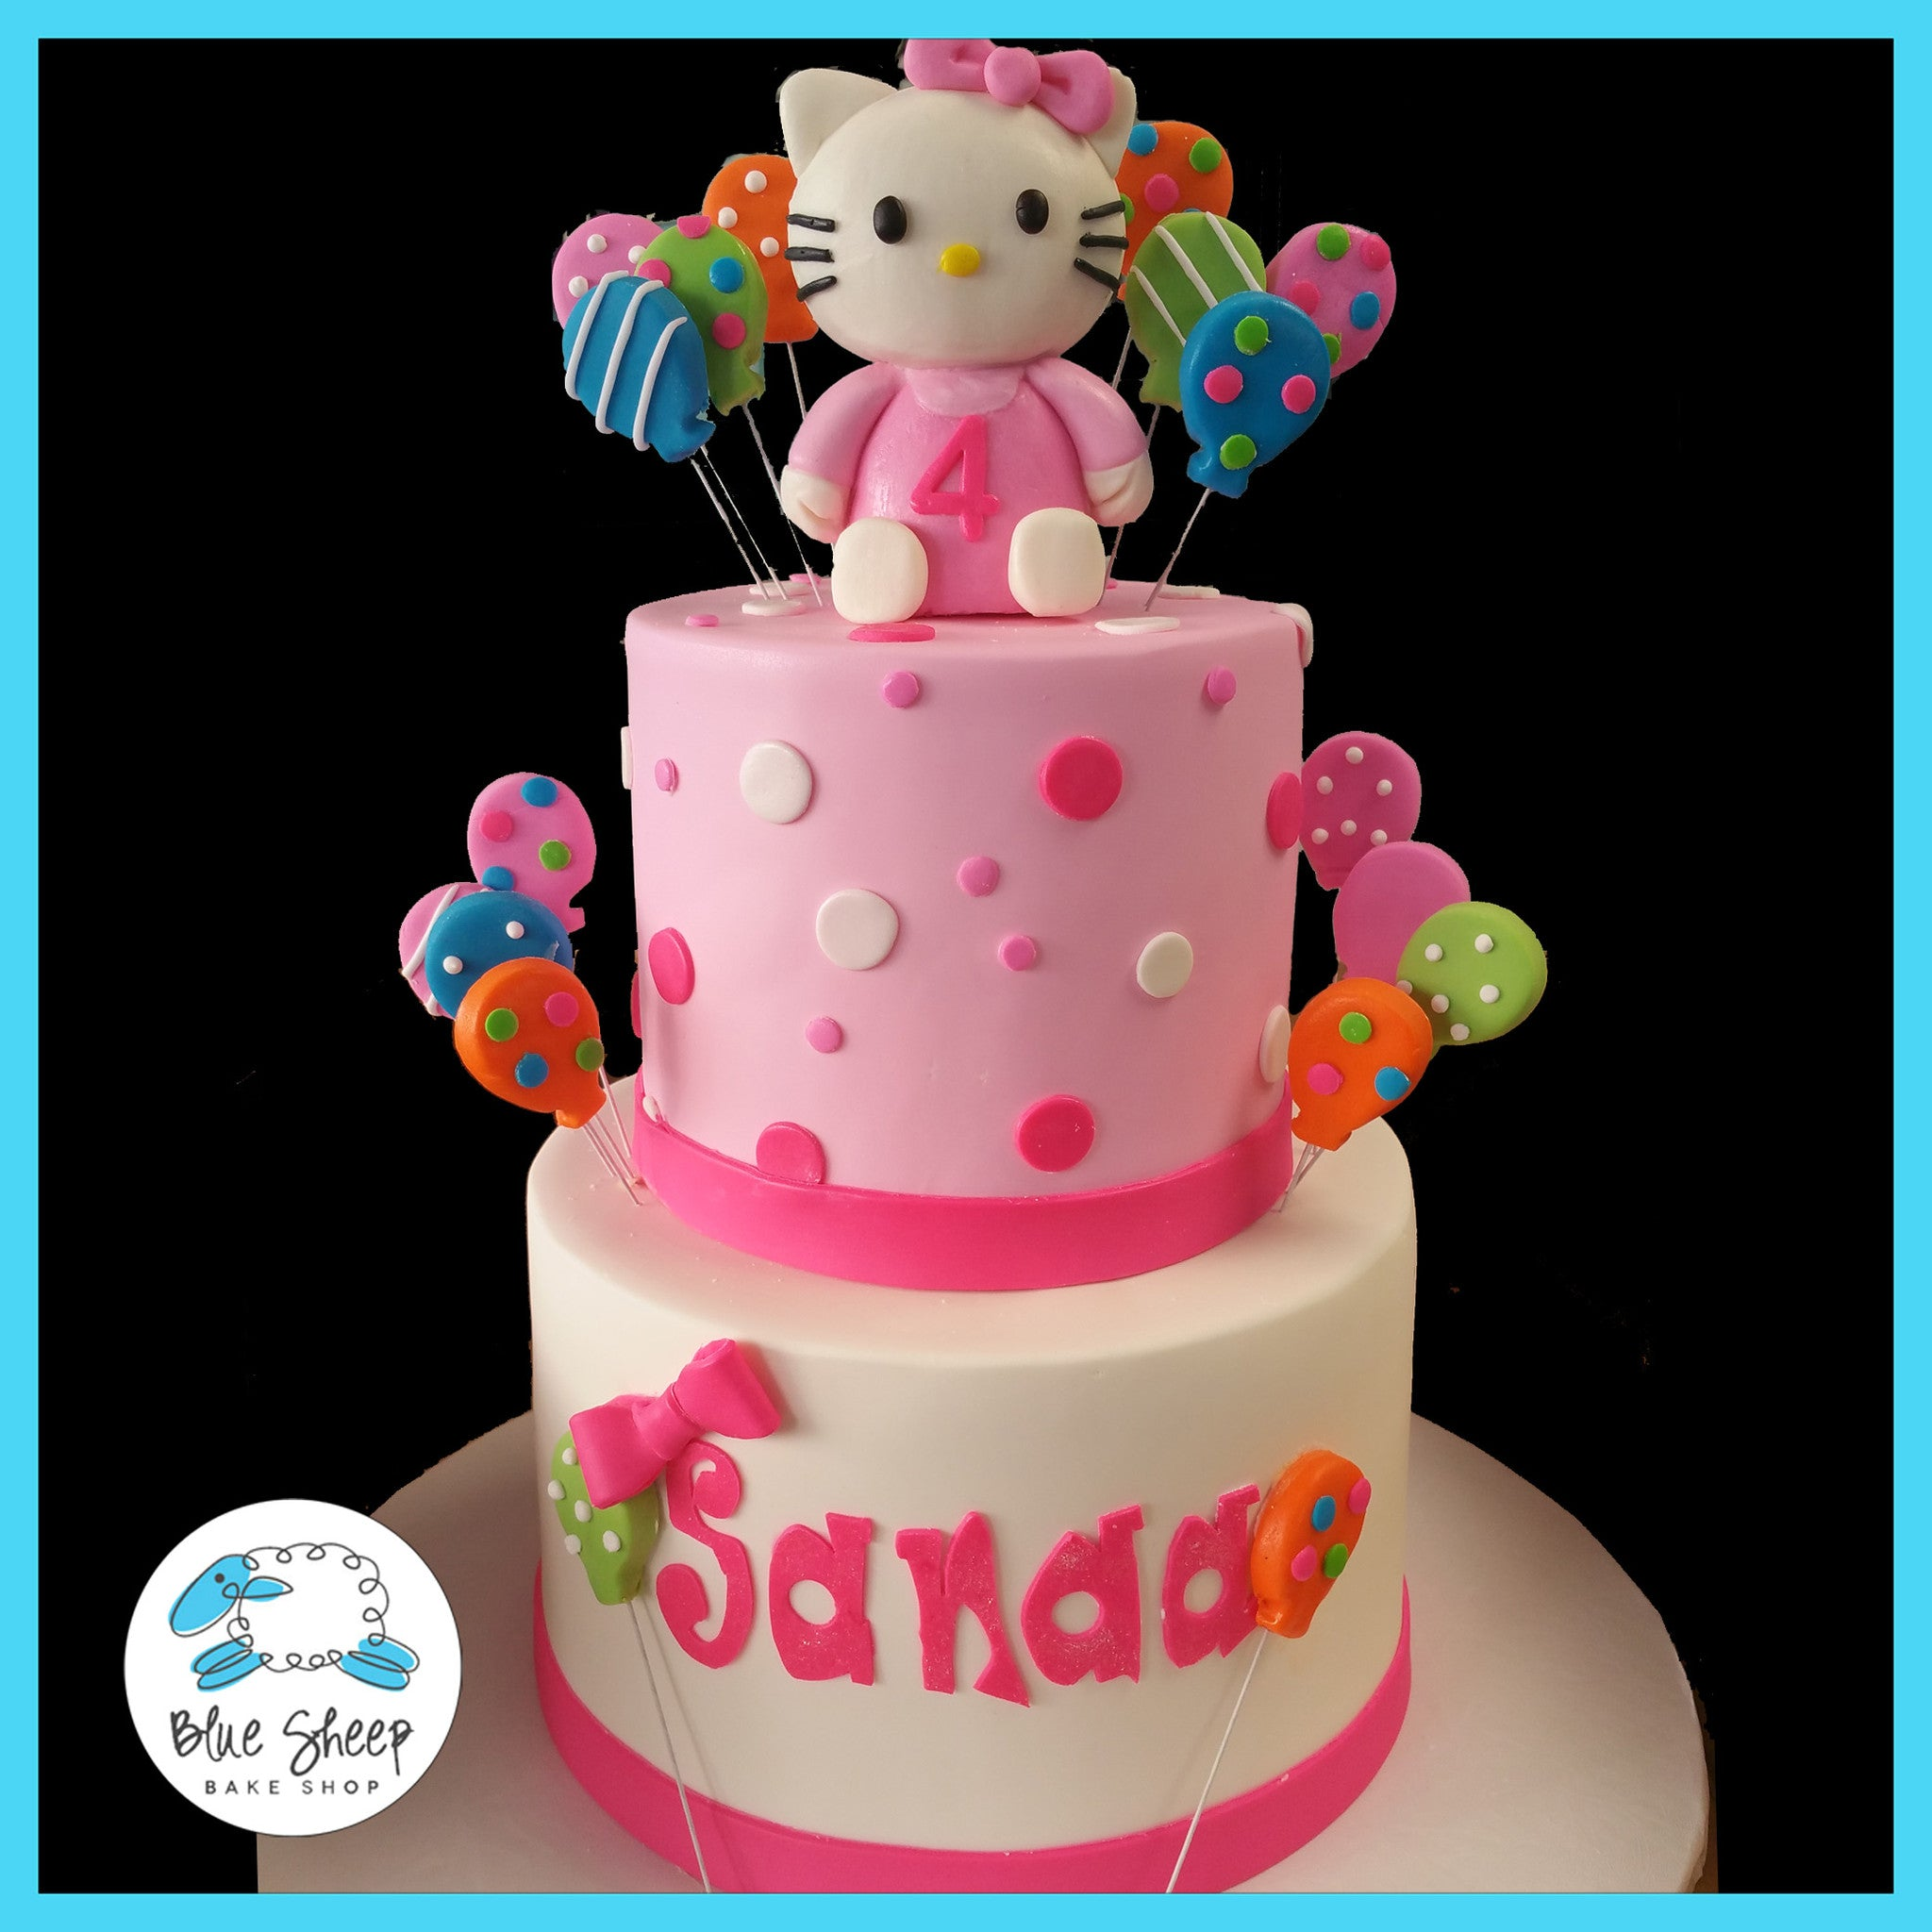 Astonishing Hello Kitty Birthday Cake Blue Sheep Bake Shop Personalised Birthday Cards Cominlily Jamesorg